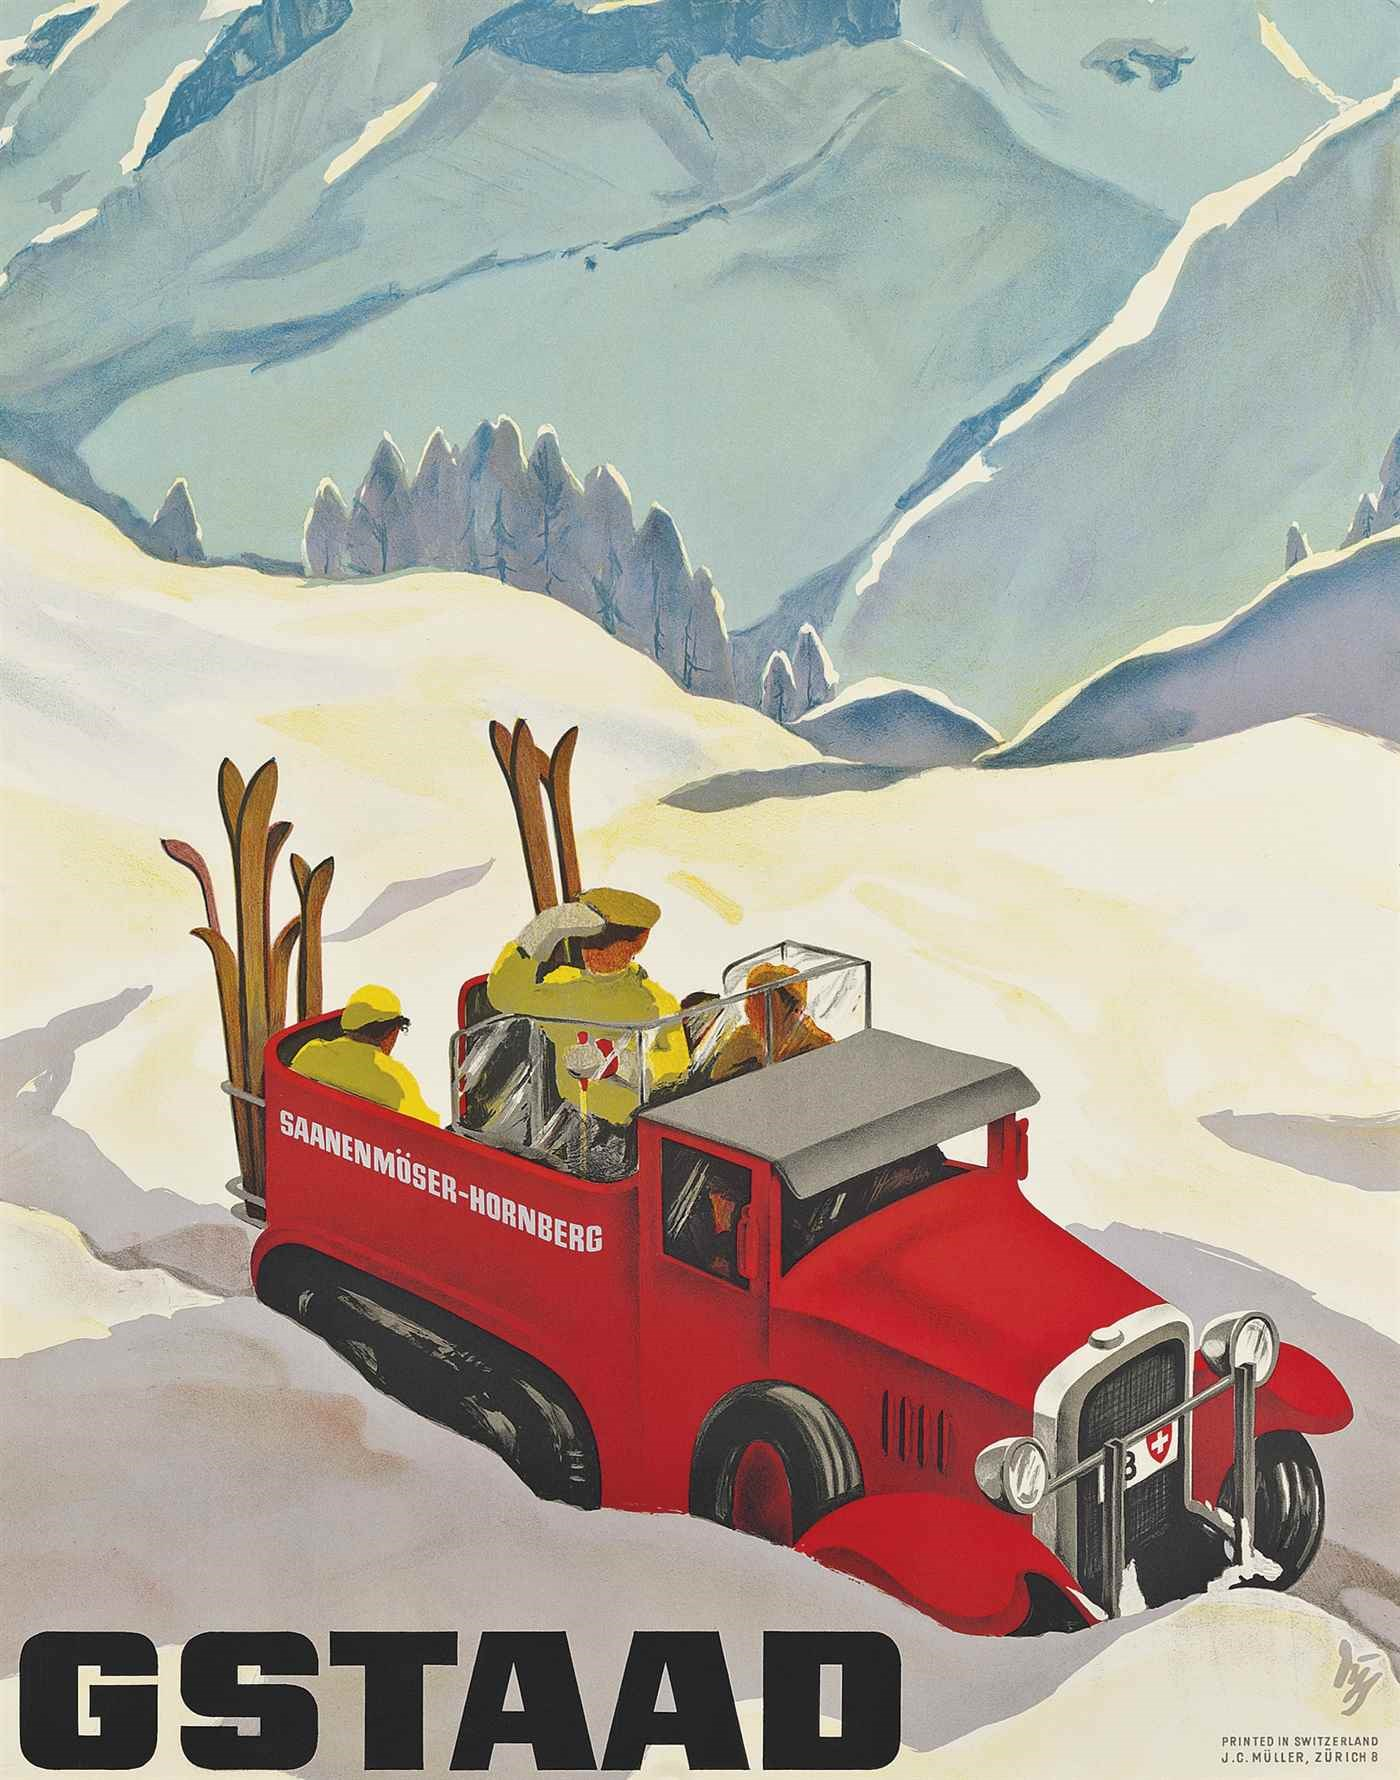 The Ski Sale auction at Christies